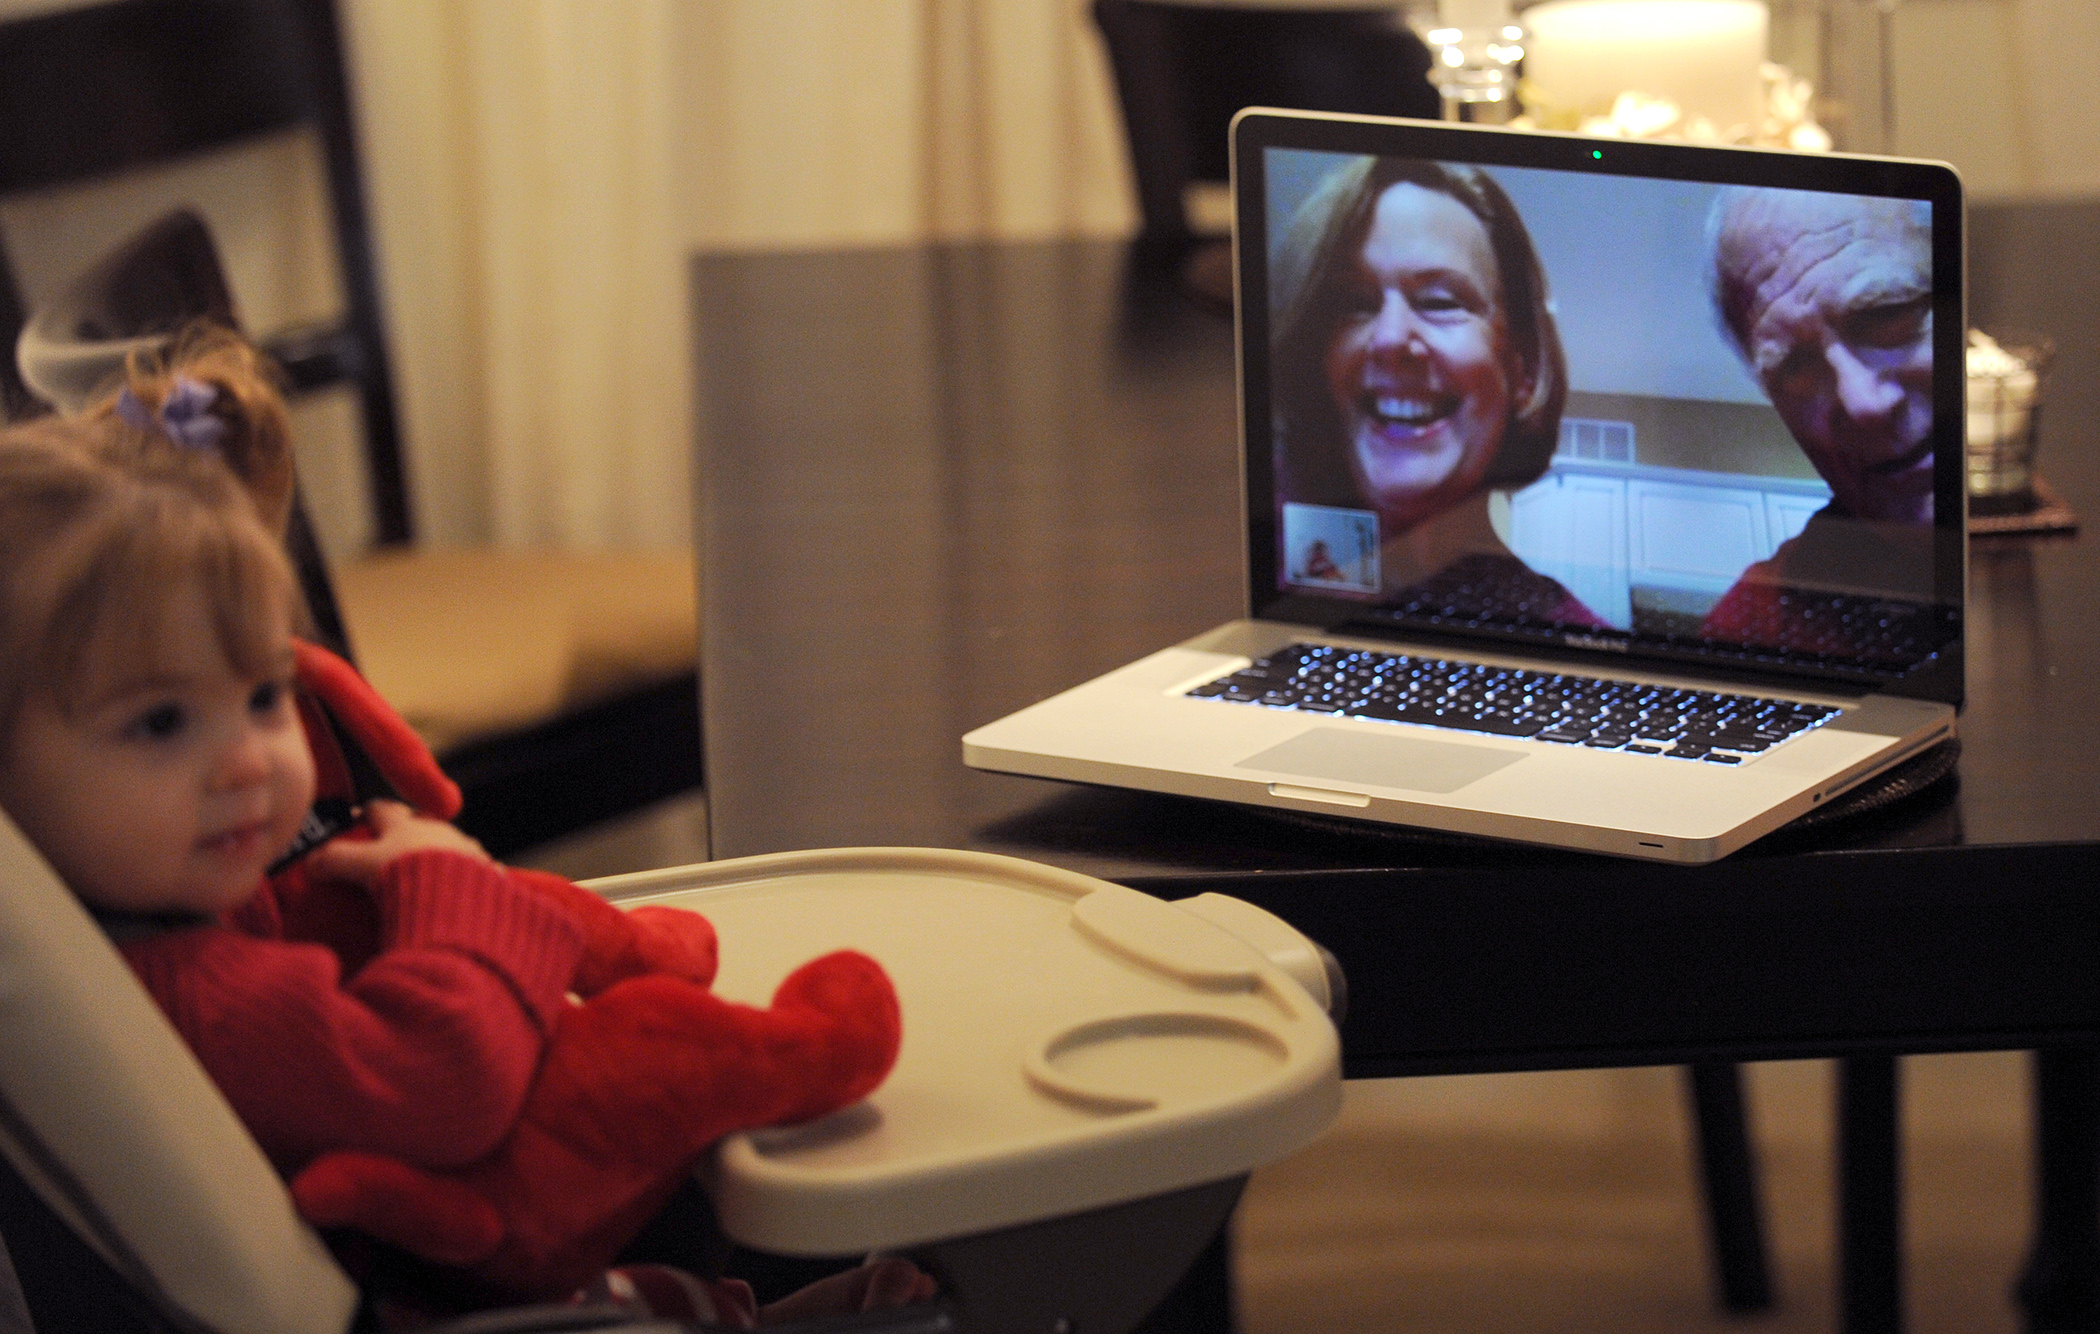 Thirteen-month old Emma Joyce of Hingham, Massachusetts use Skype to visit her grandparents, Don and Jane McClain who live in Dayton, Ohio. Emma's parents are Brian and Allison Joyce.